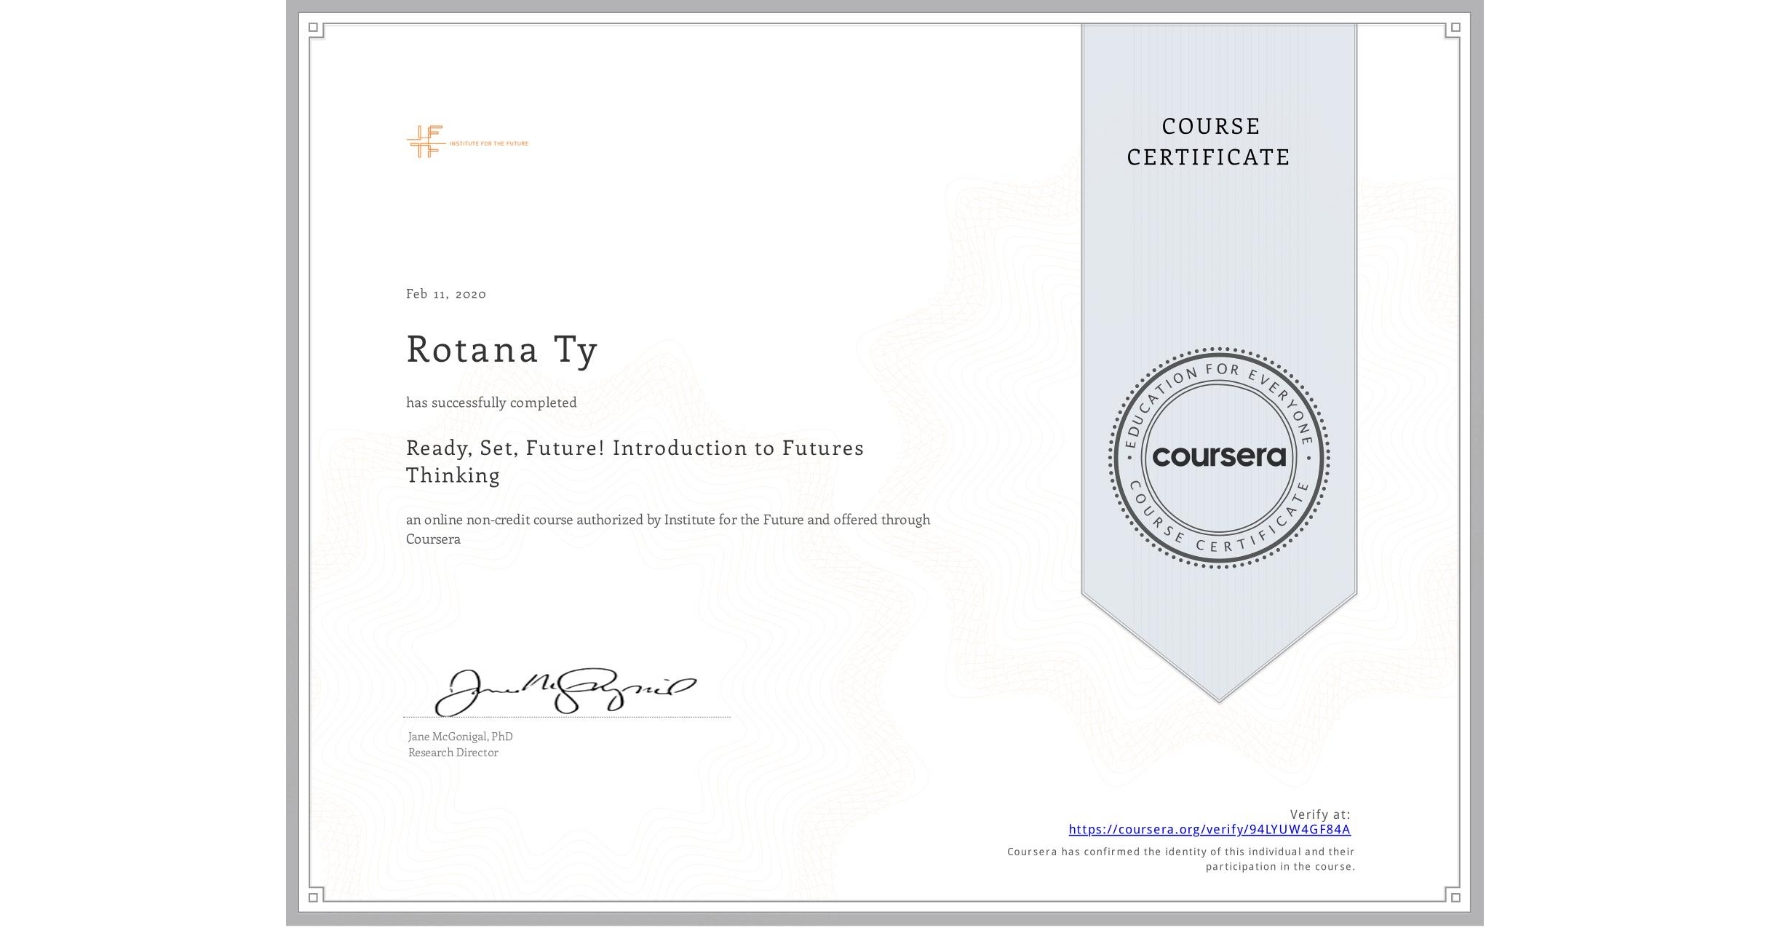 View certificate for Rotana Ty, Ready, Set, Future! Introduction to Futures Thinking, an online non-credit course authorized by Institute for the Future and offered through Coursera